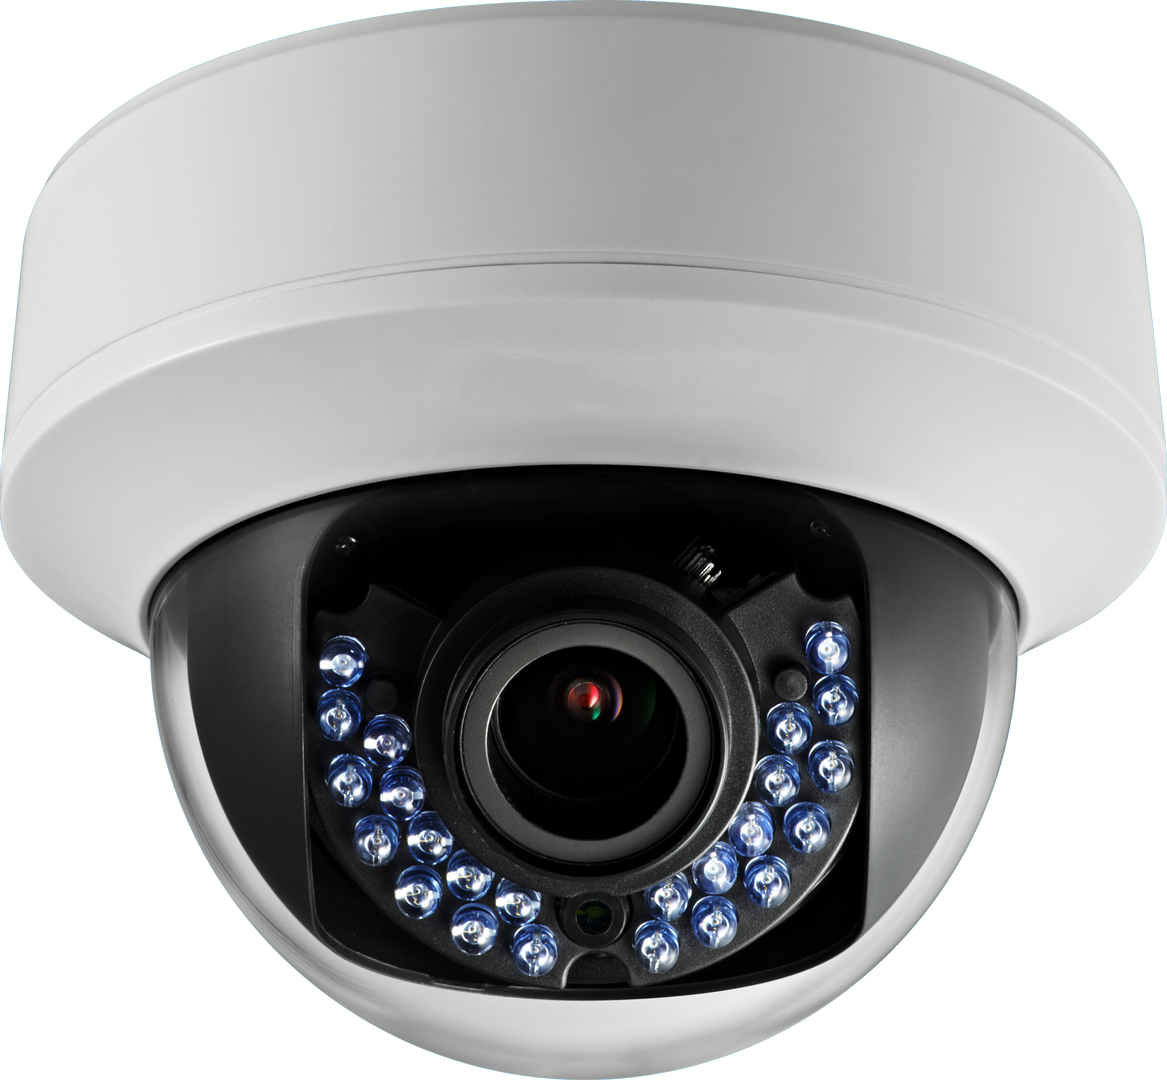 CCTV Products| INFINIZE CORPTECH PVT LTD